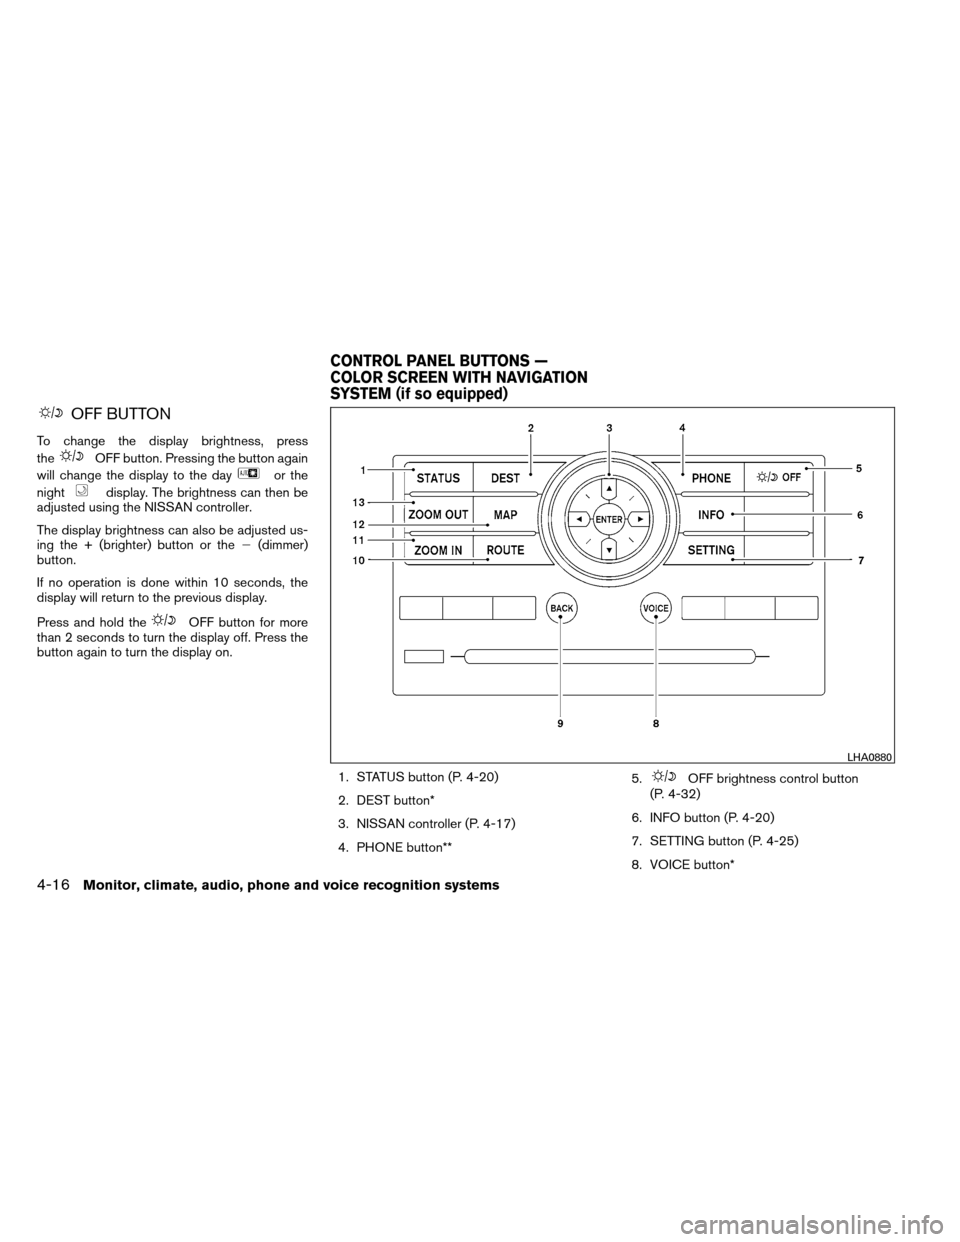 NISSAN ARMADA 2012 1.G Owners Manual OFF BUTTON To change the display brightness, press the OFF button. Pressing the button again will change the display to the day or the night display. The brightness can then be adjusted using the NISS